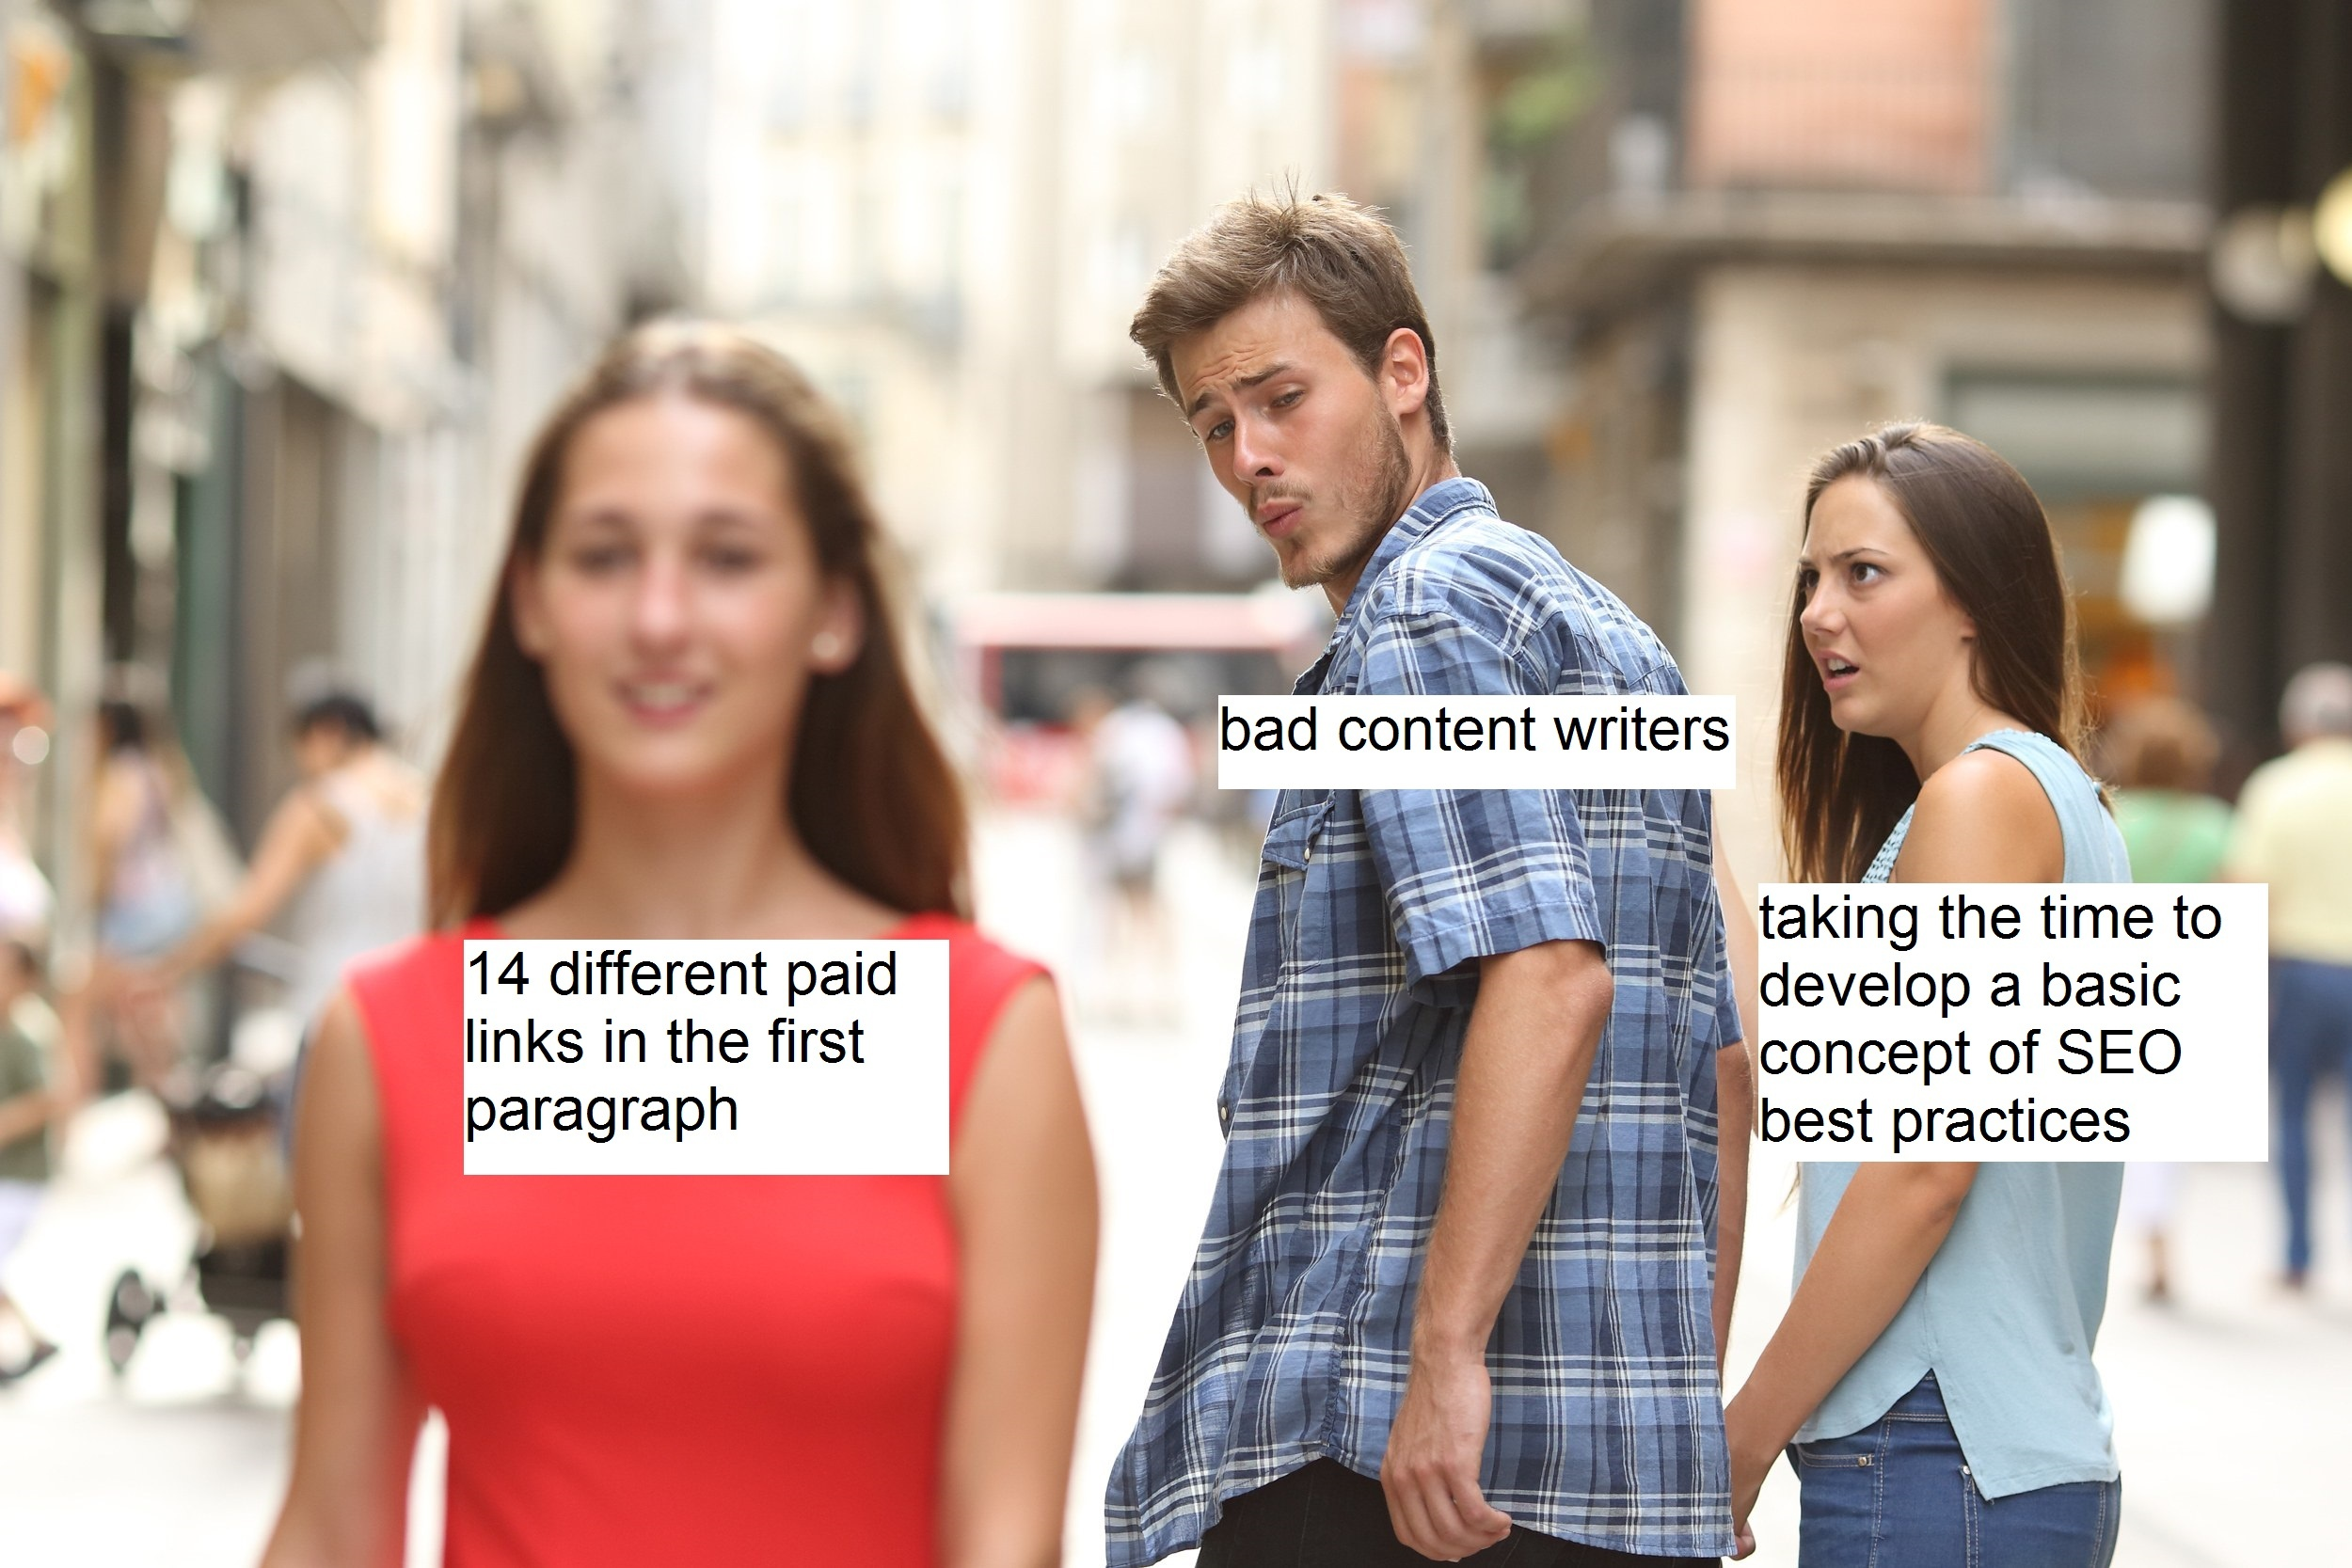 Distracted boyfriend meme illustrating how bad content writers use too many paid links